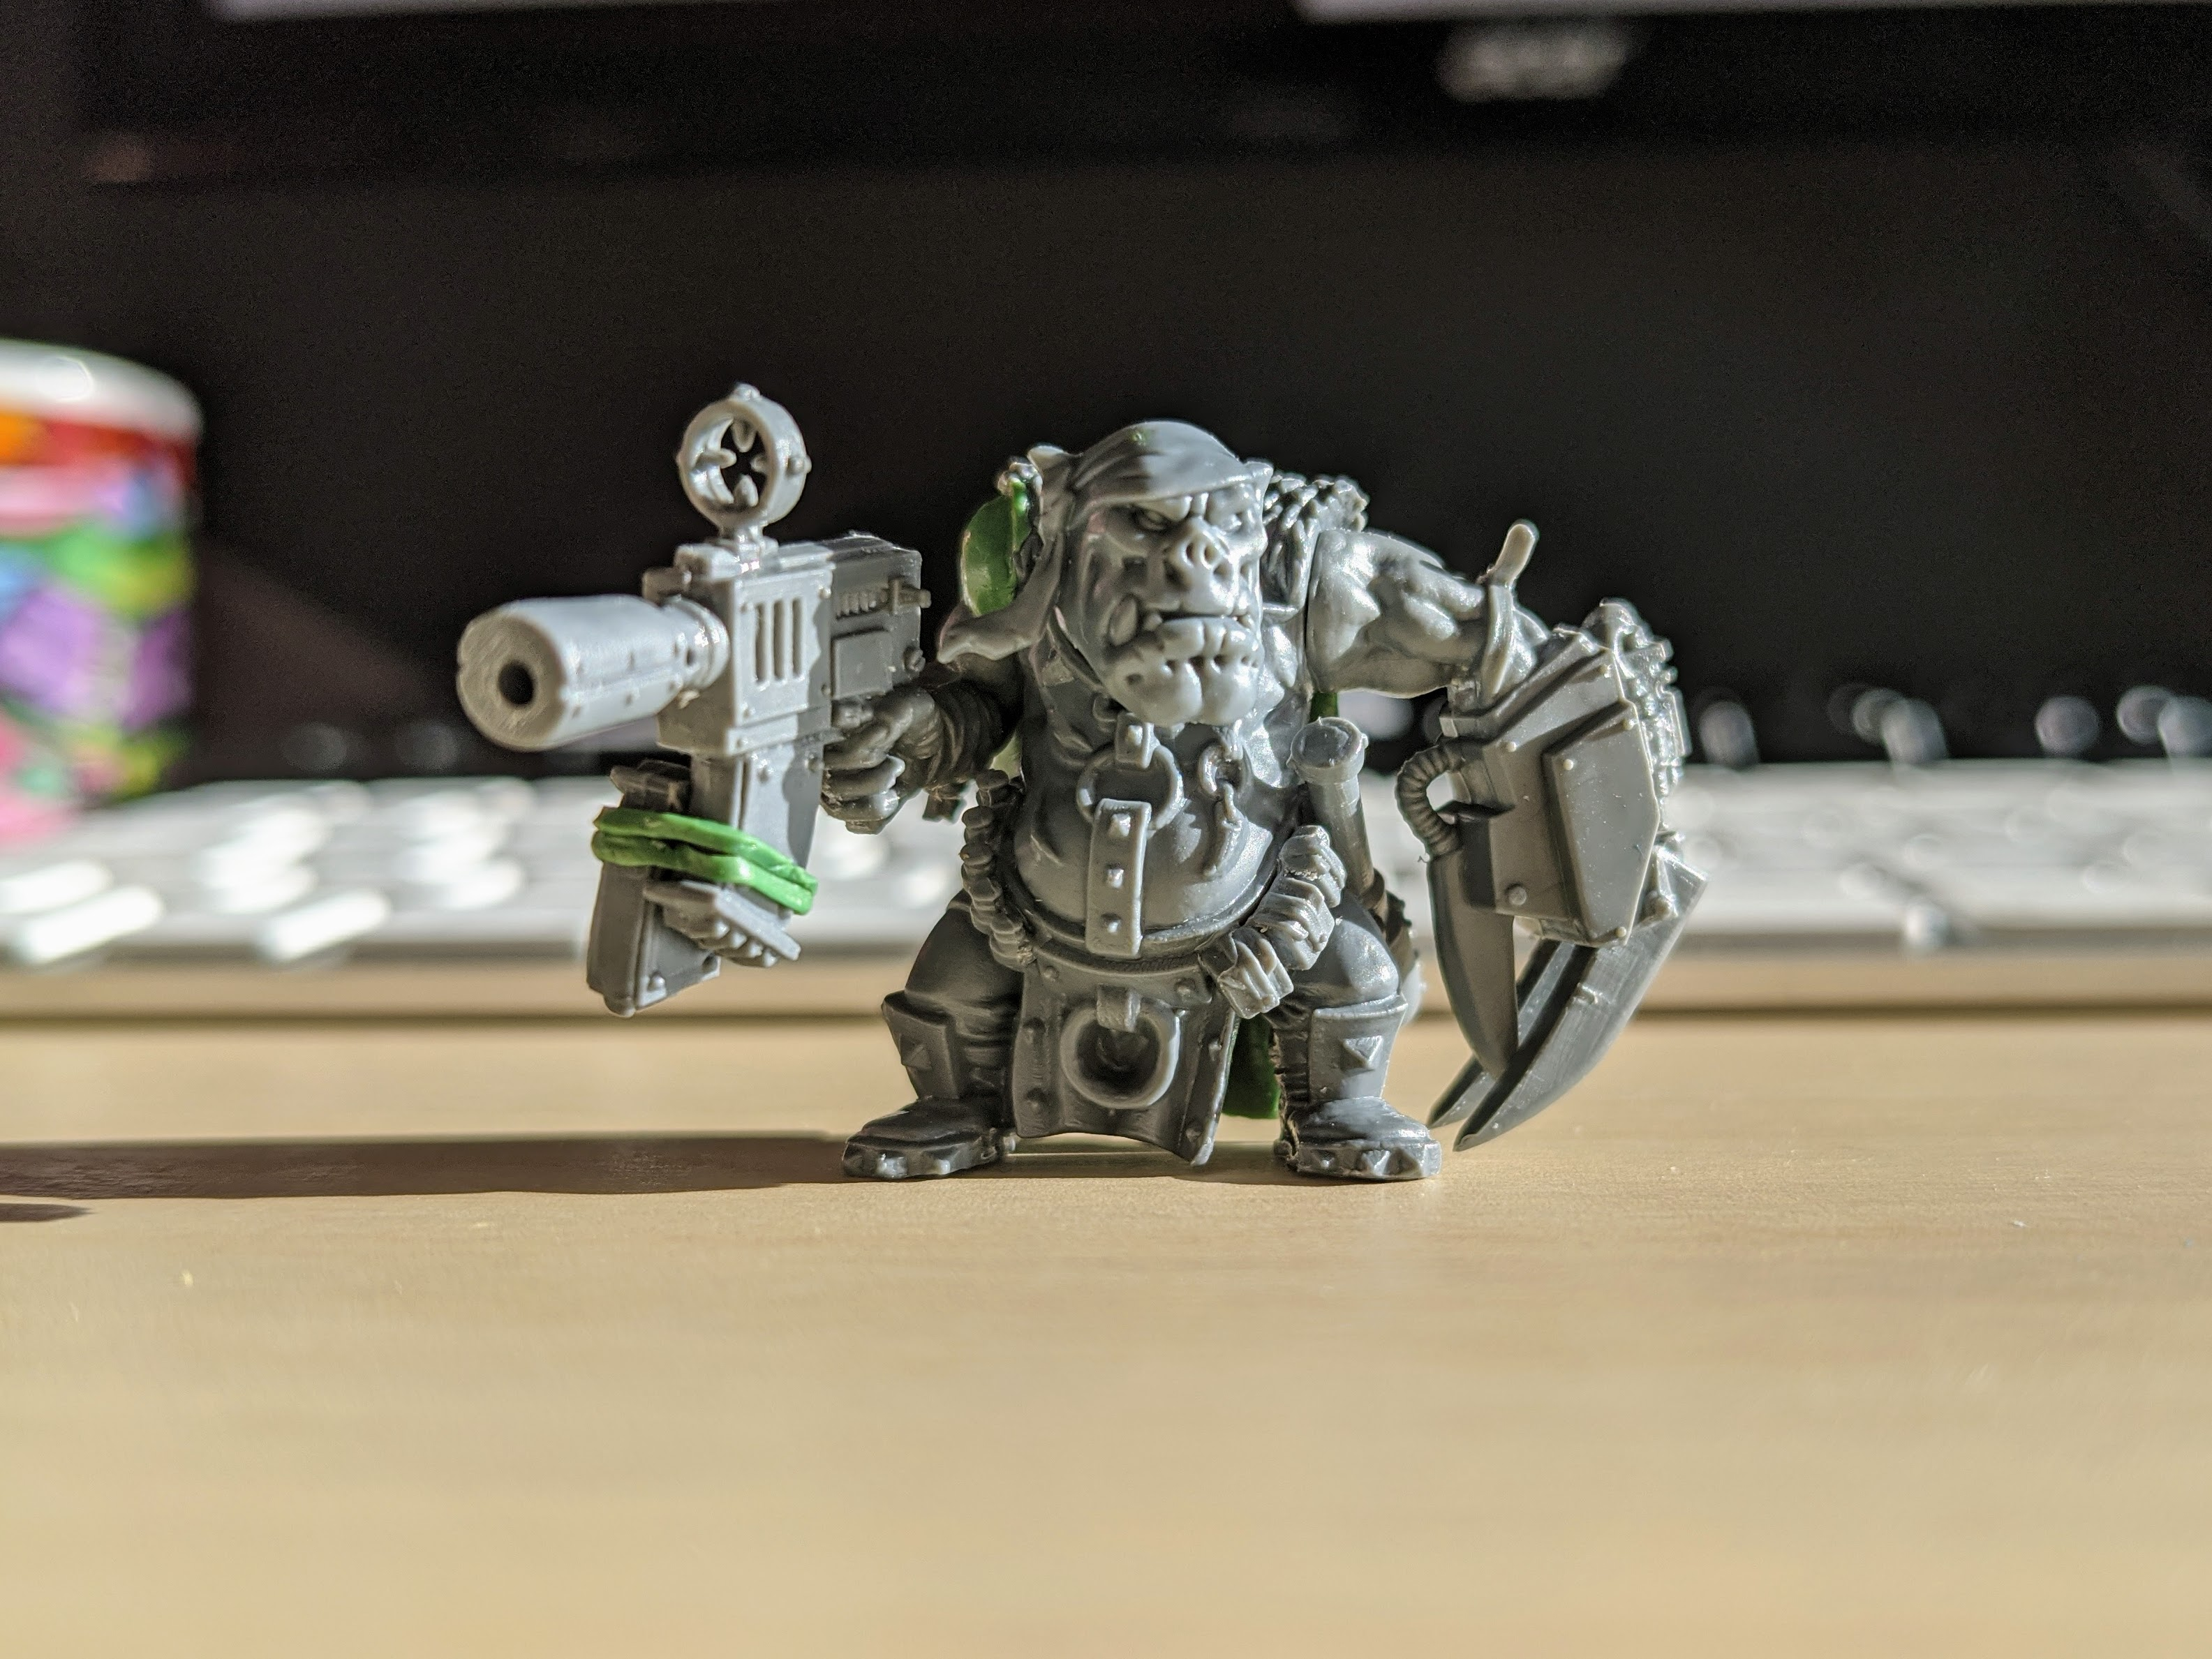 An Ork miniature with a kitbashed gun